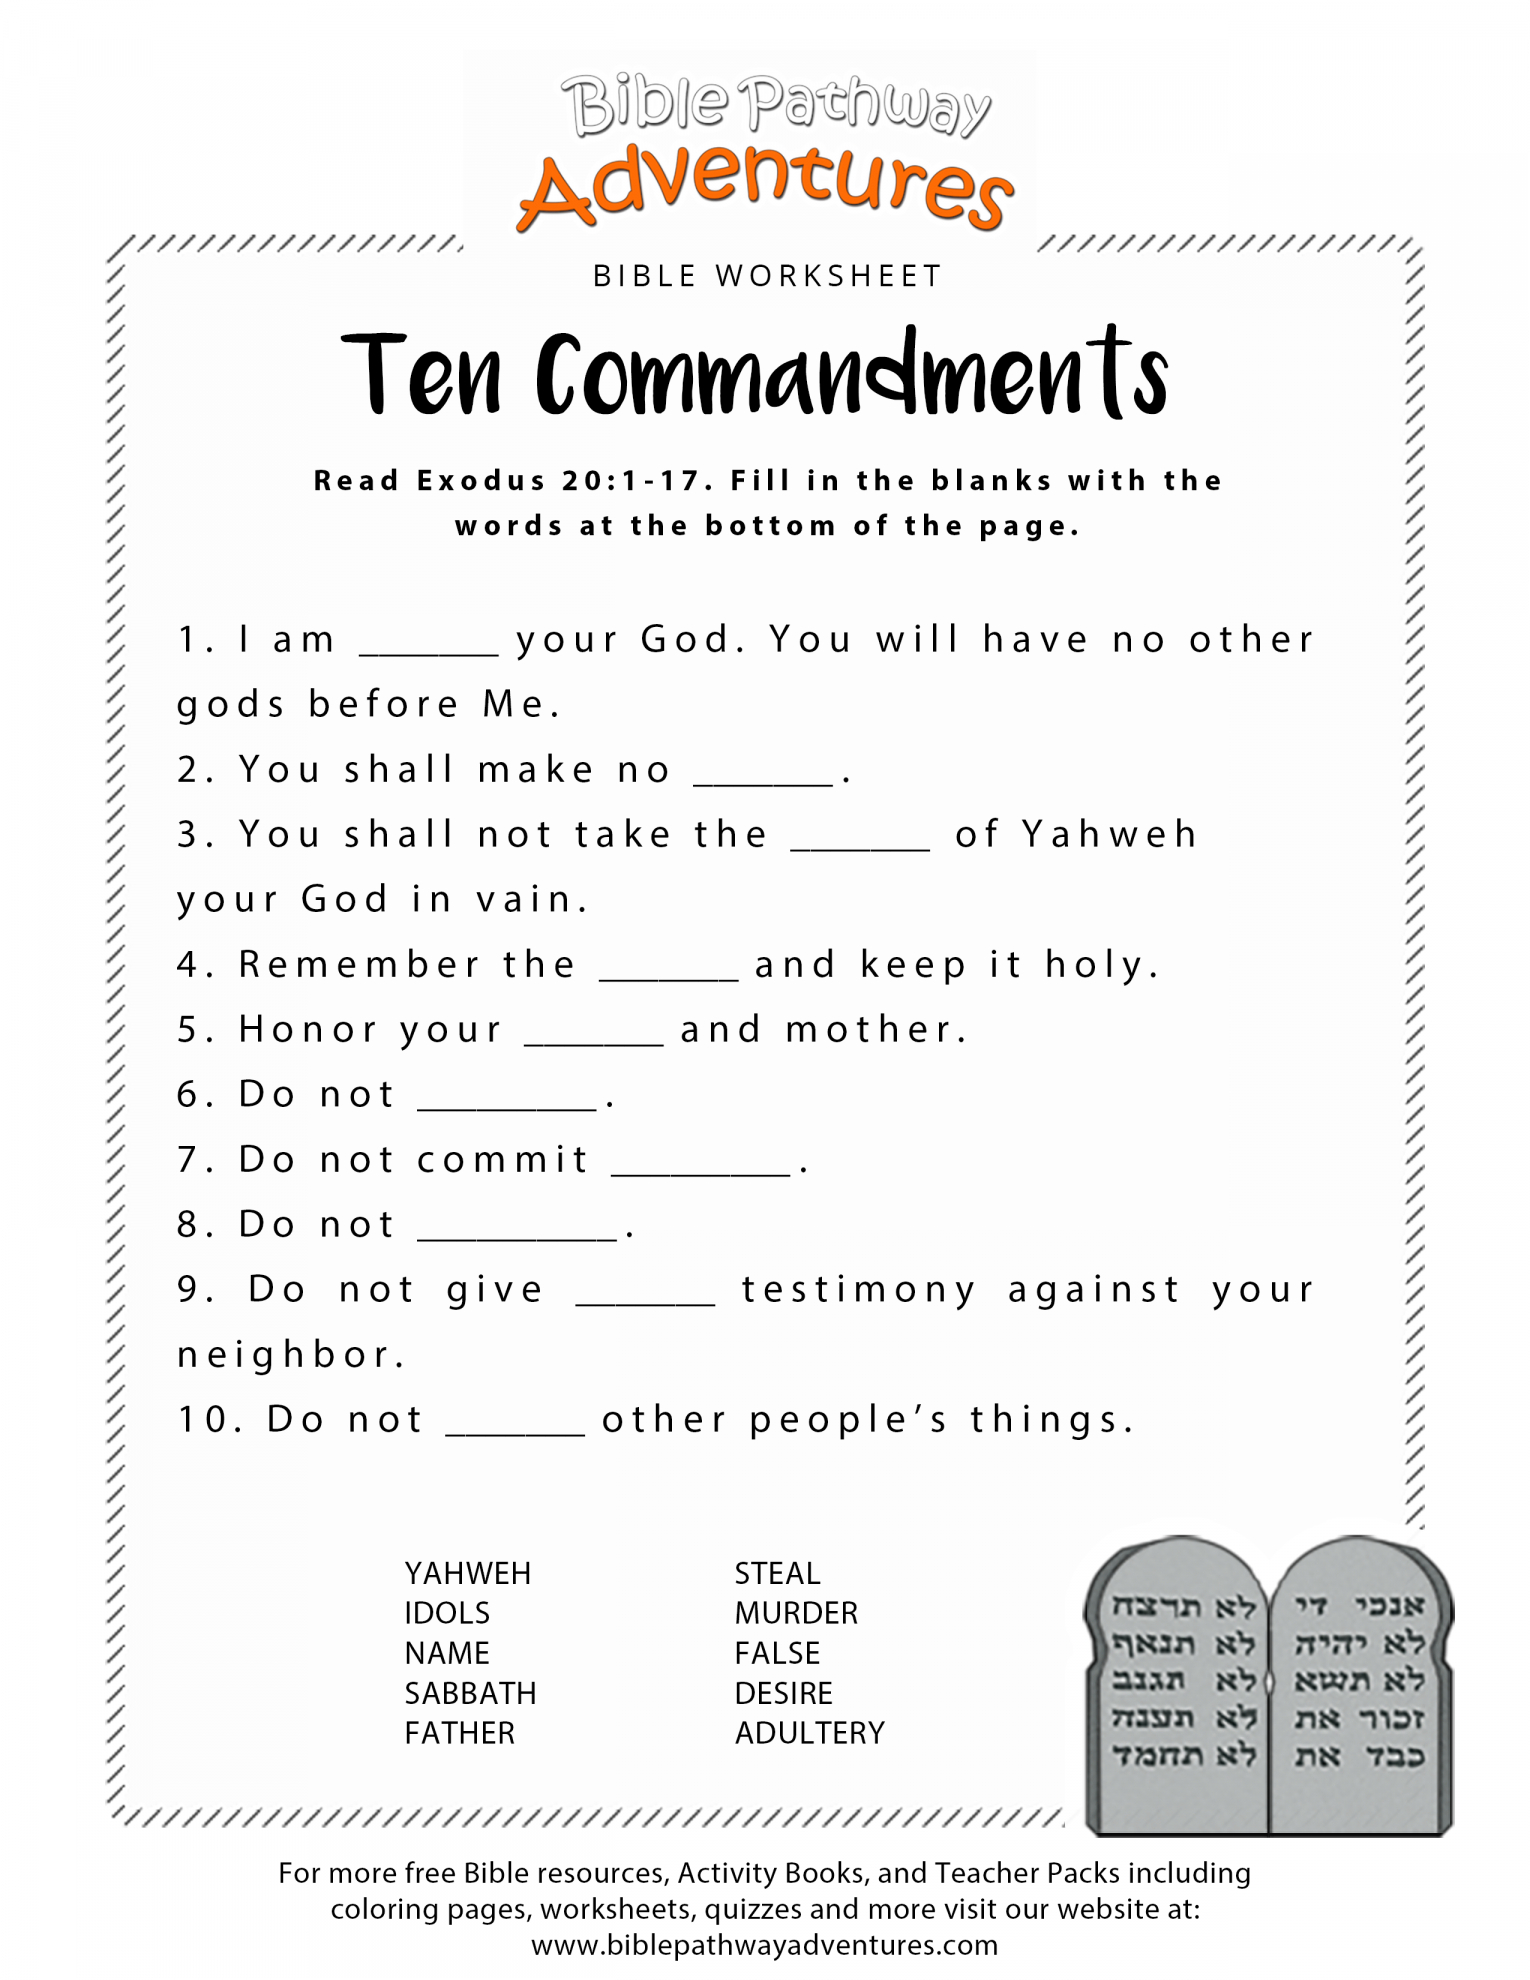 Free Printable Bible Worksheets For Youth ~ Papersnake.ca - Free Printable Bible Lessons For Youth